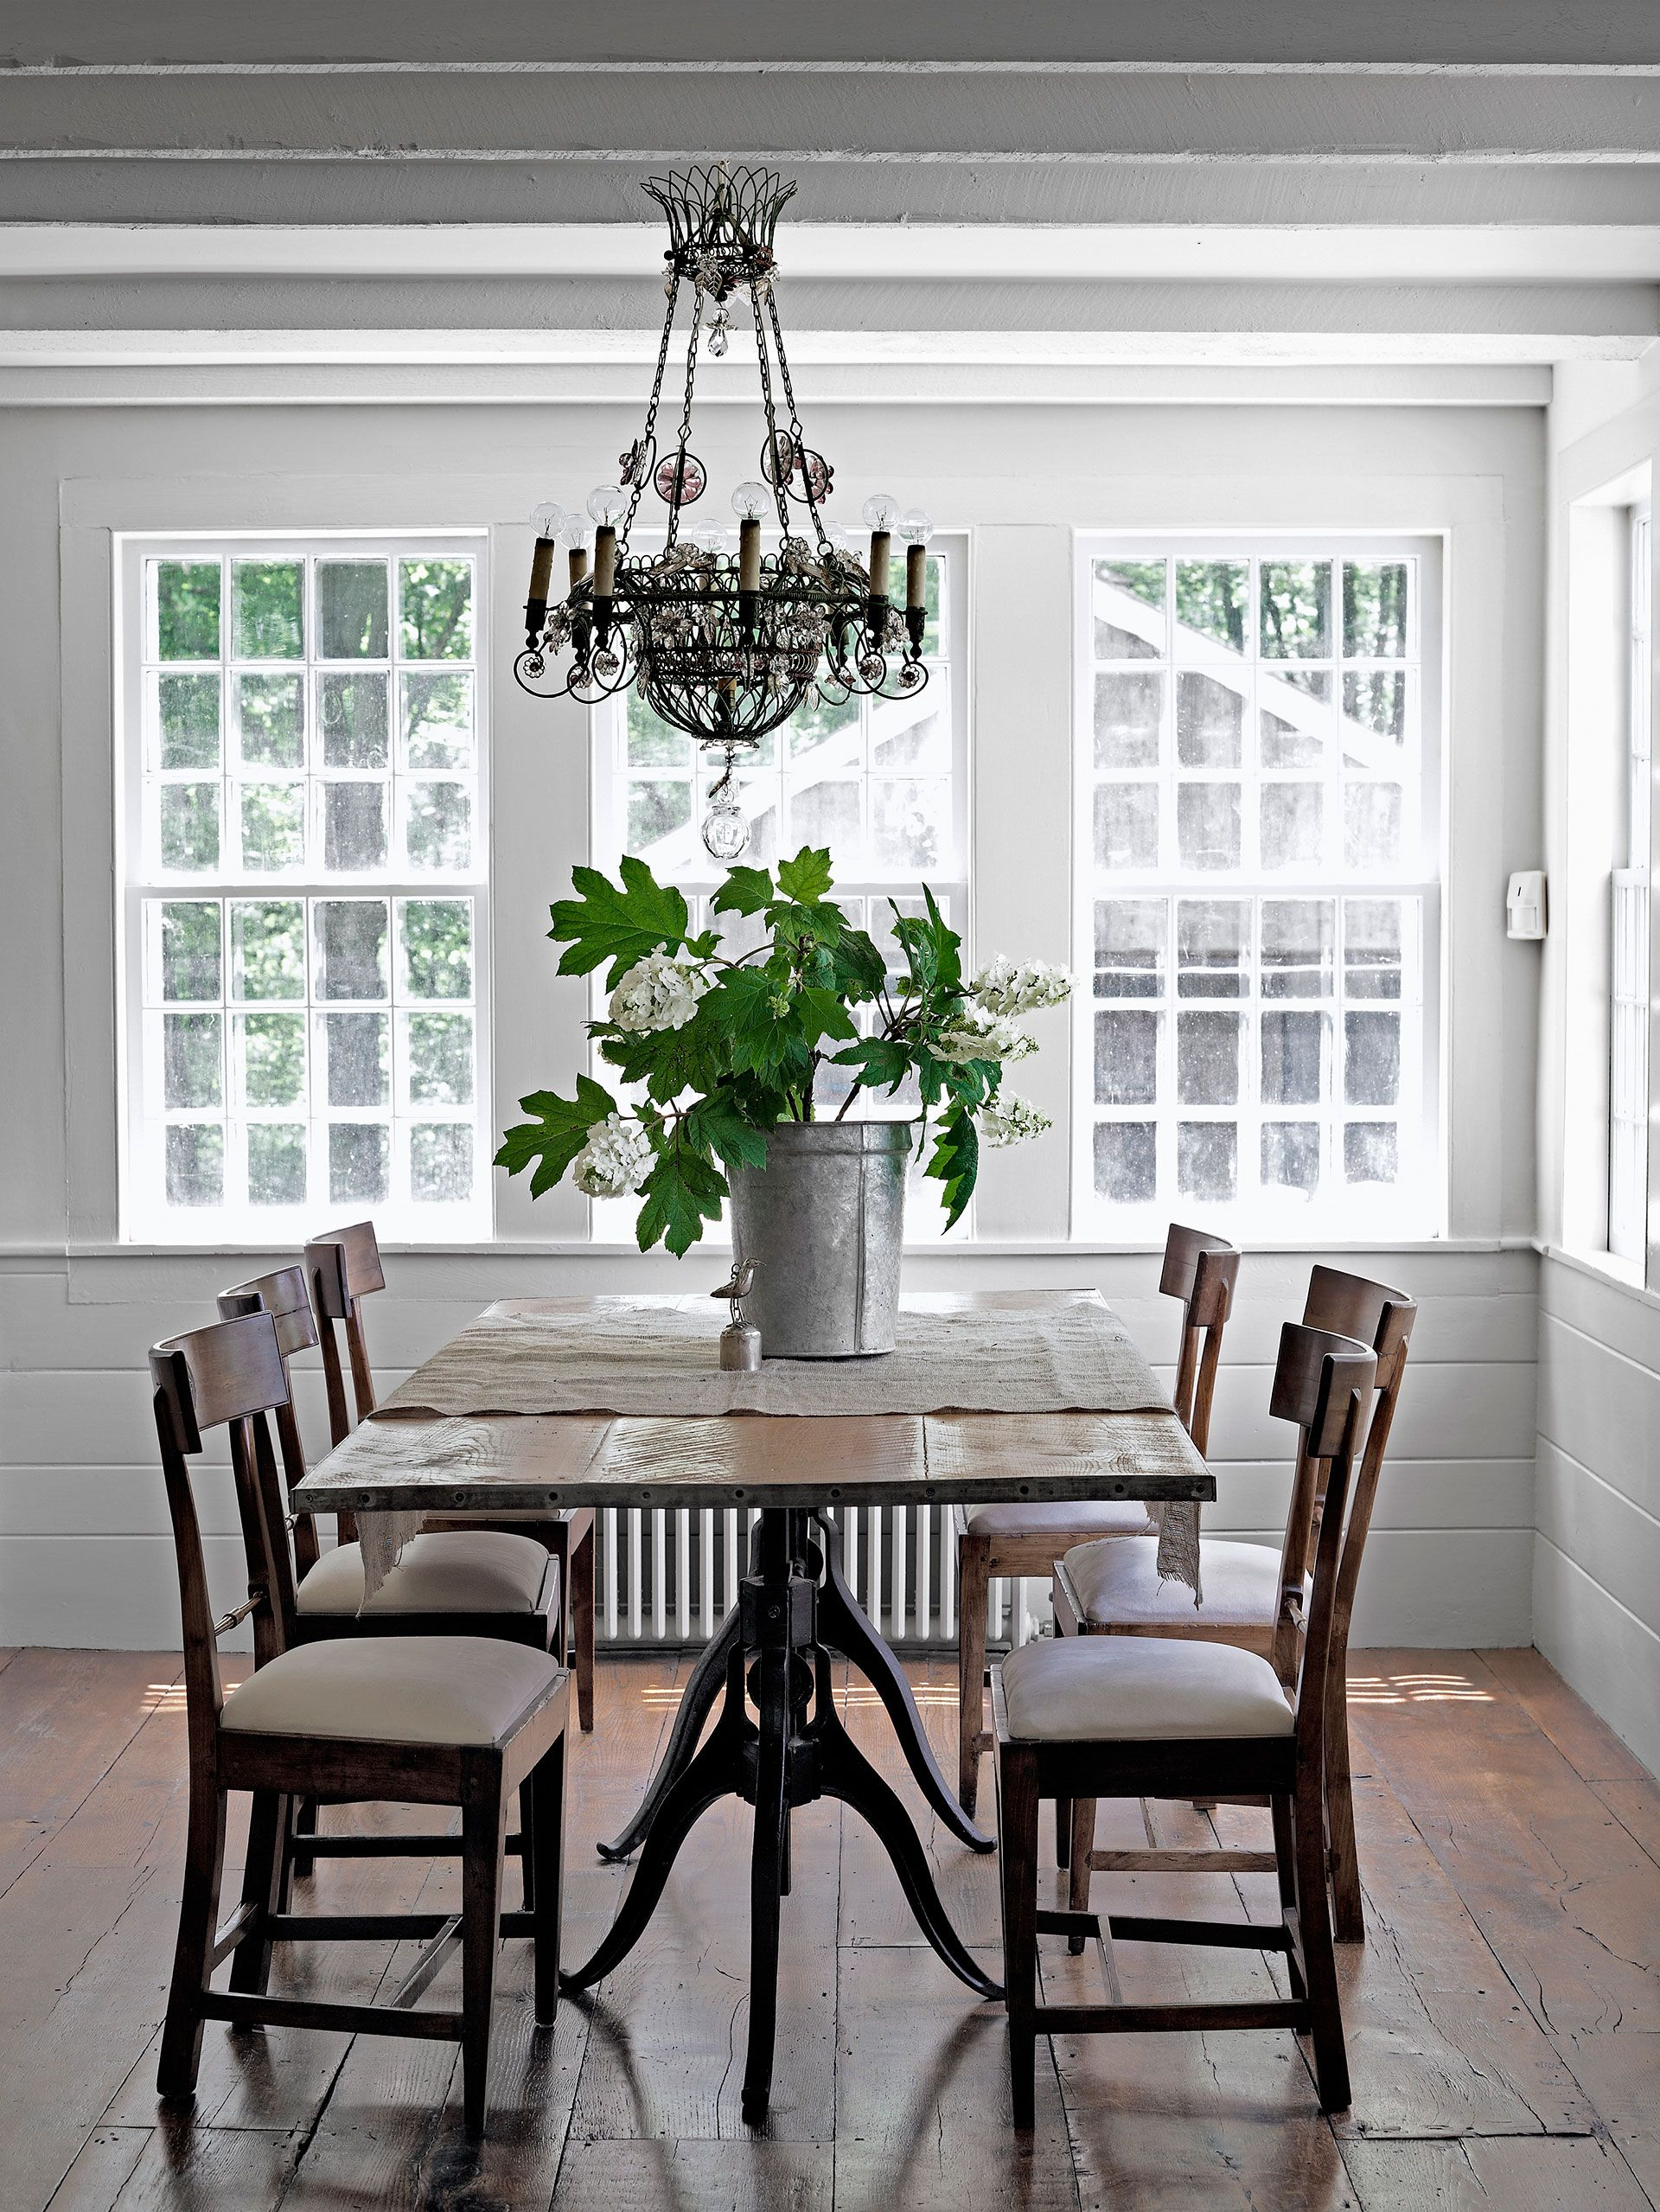 83 inspired ideas for dining room decorating | antique farm table